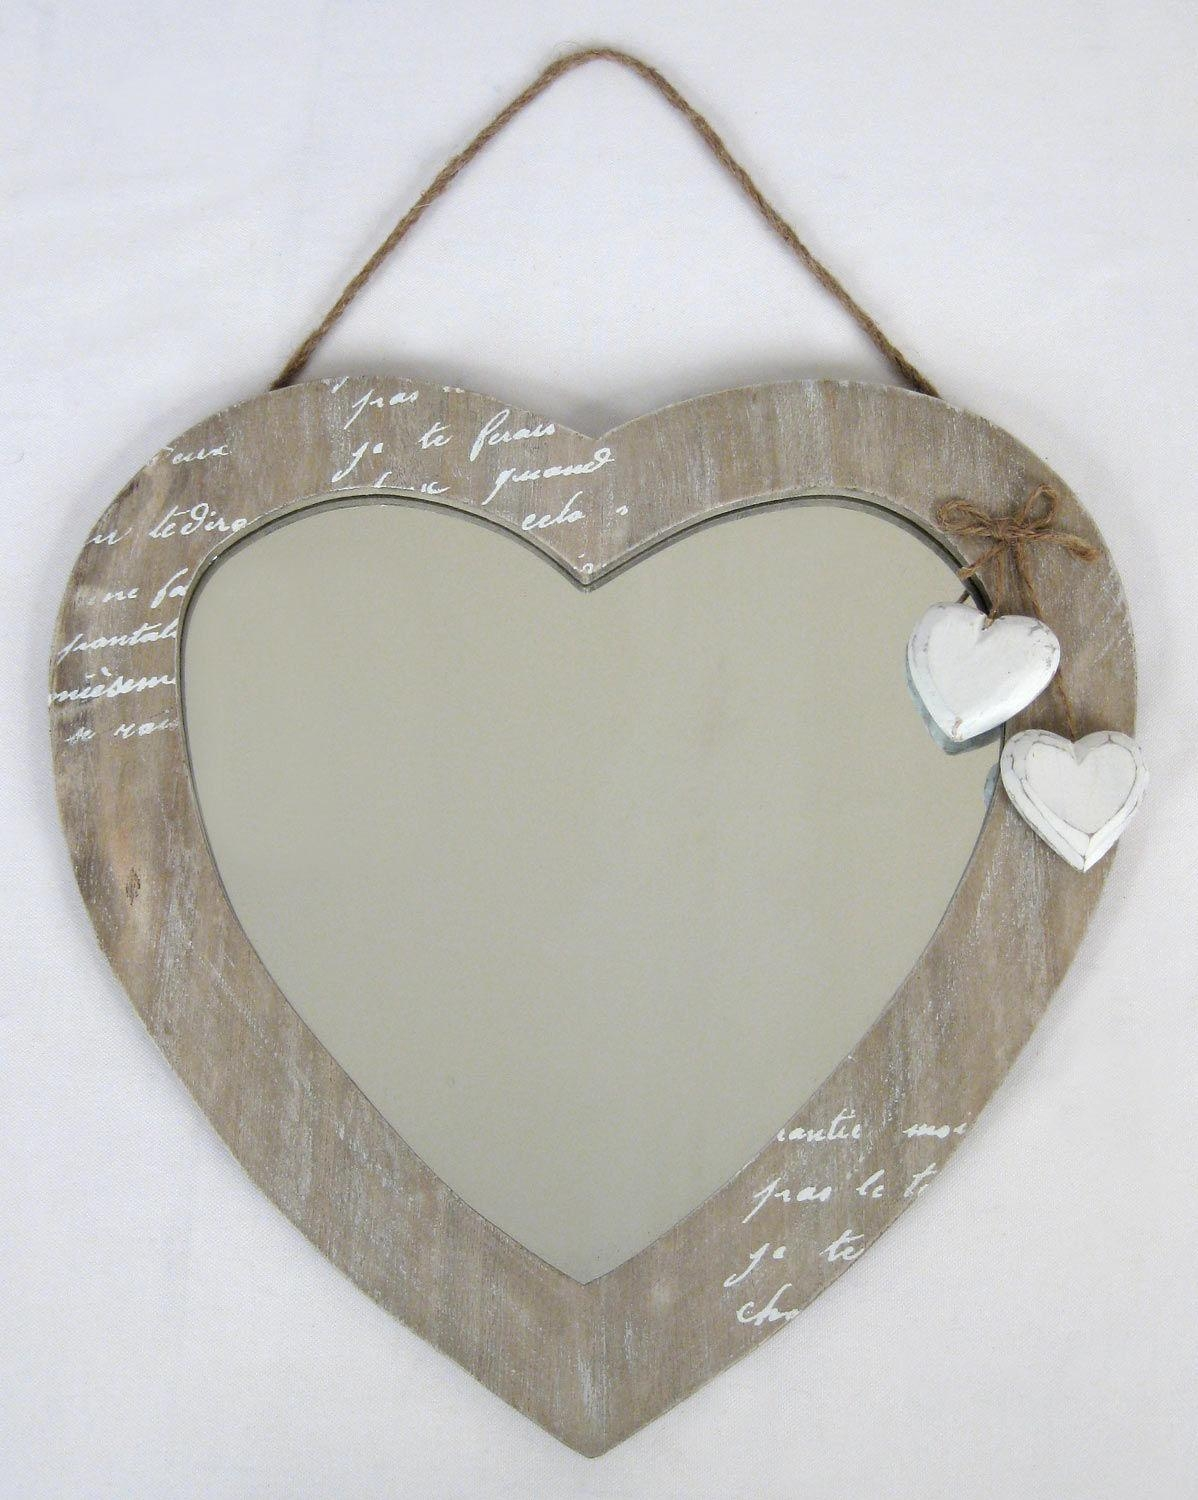 Wall Hanging Mirror Love Heart Design Shabby Chic Wood Finish 30Cm Intended For Heart Shaped Mirror For Wall (Image 20 of 20)